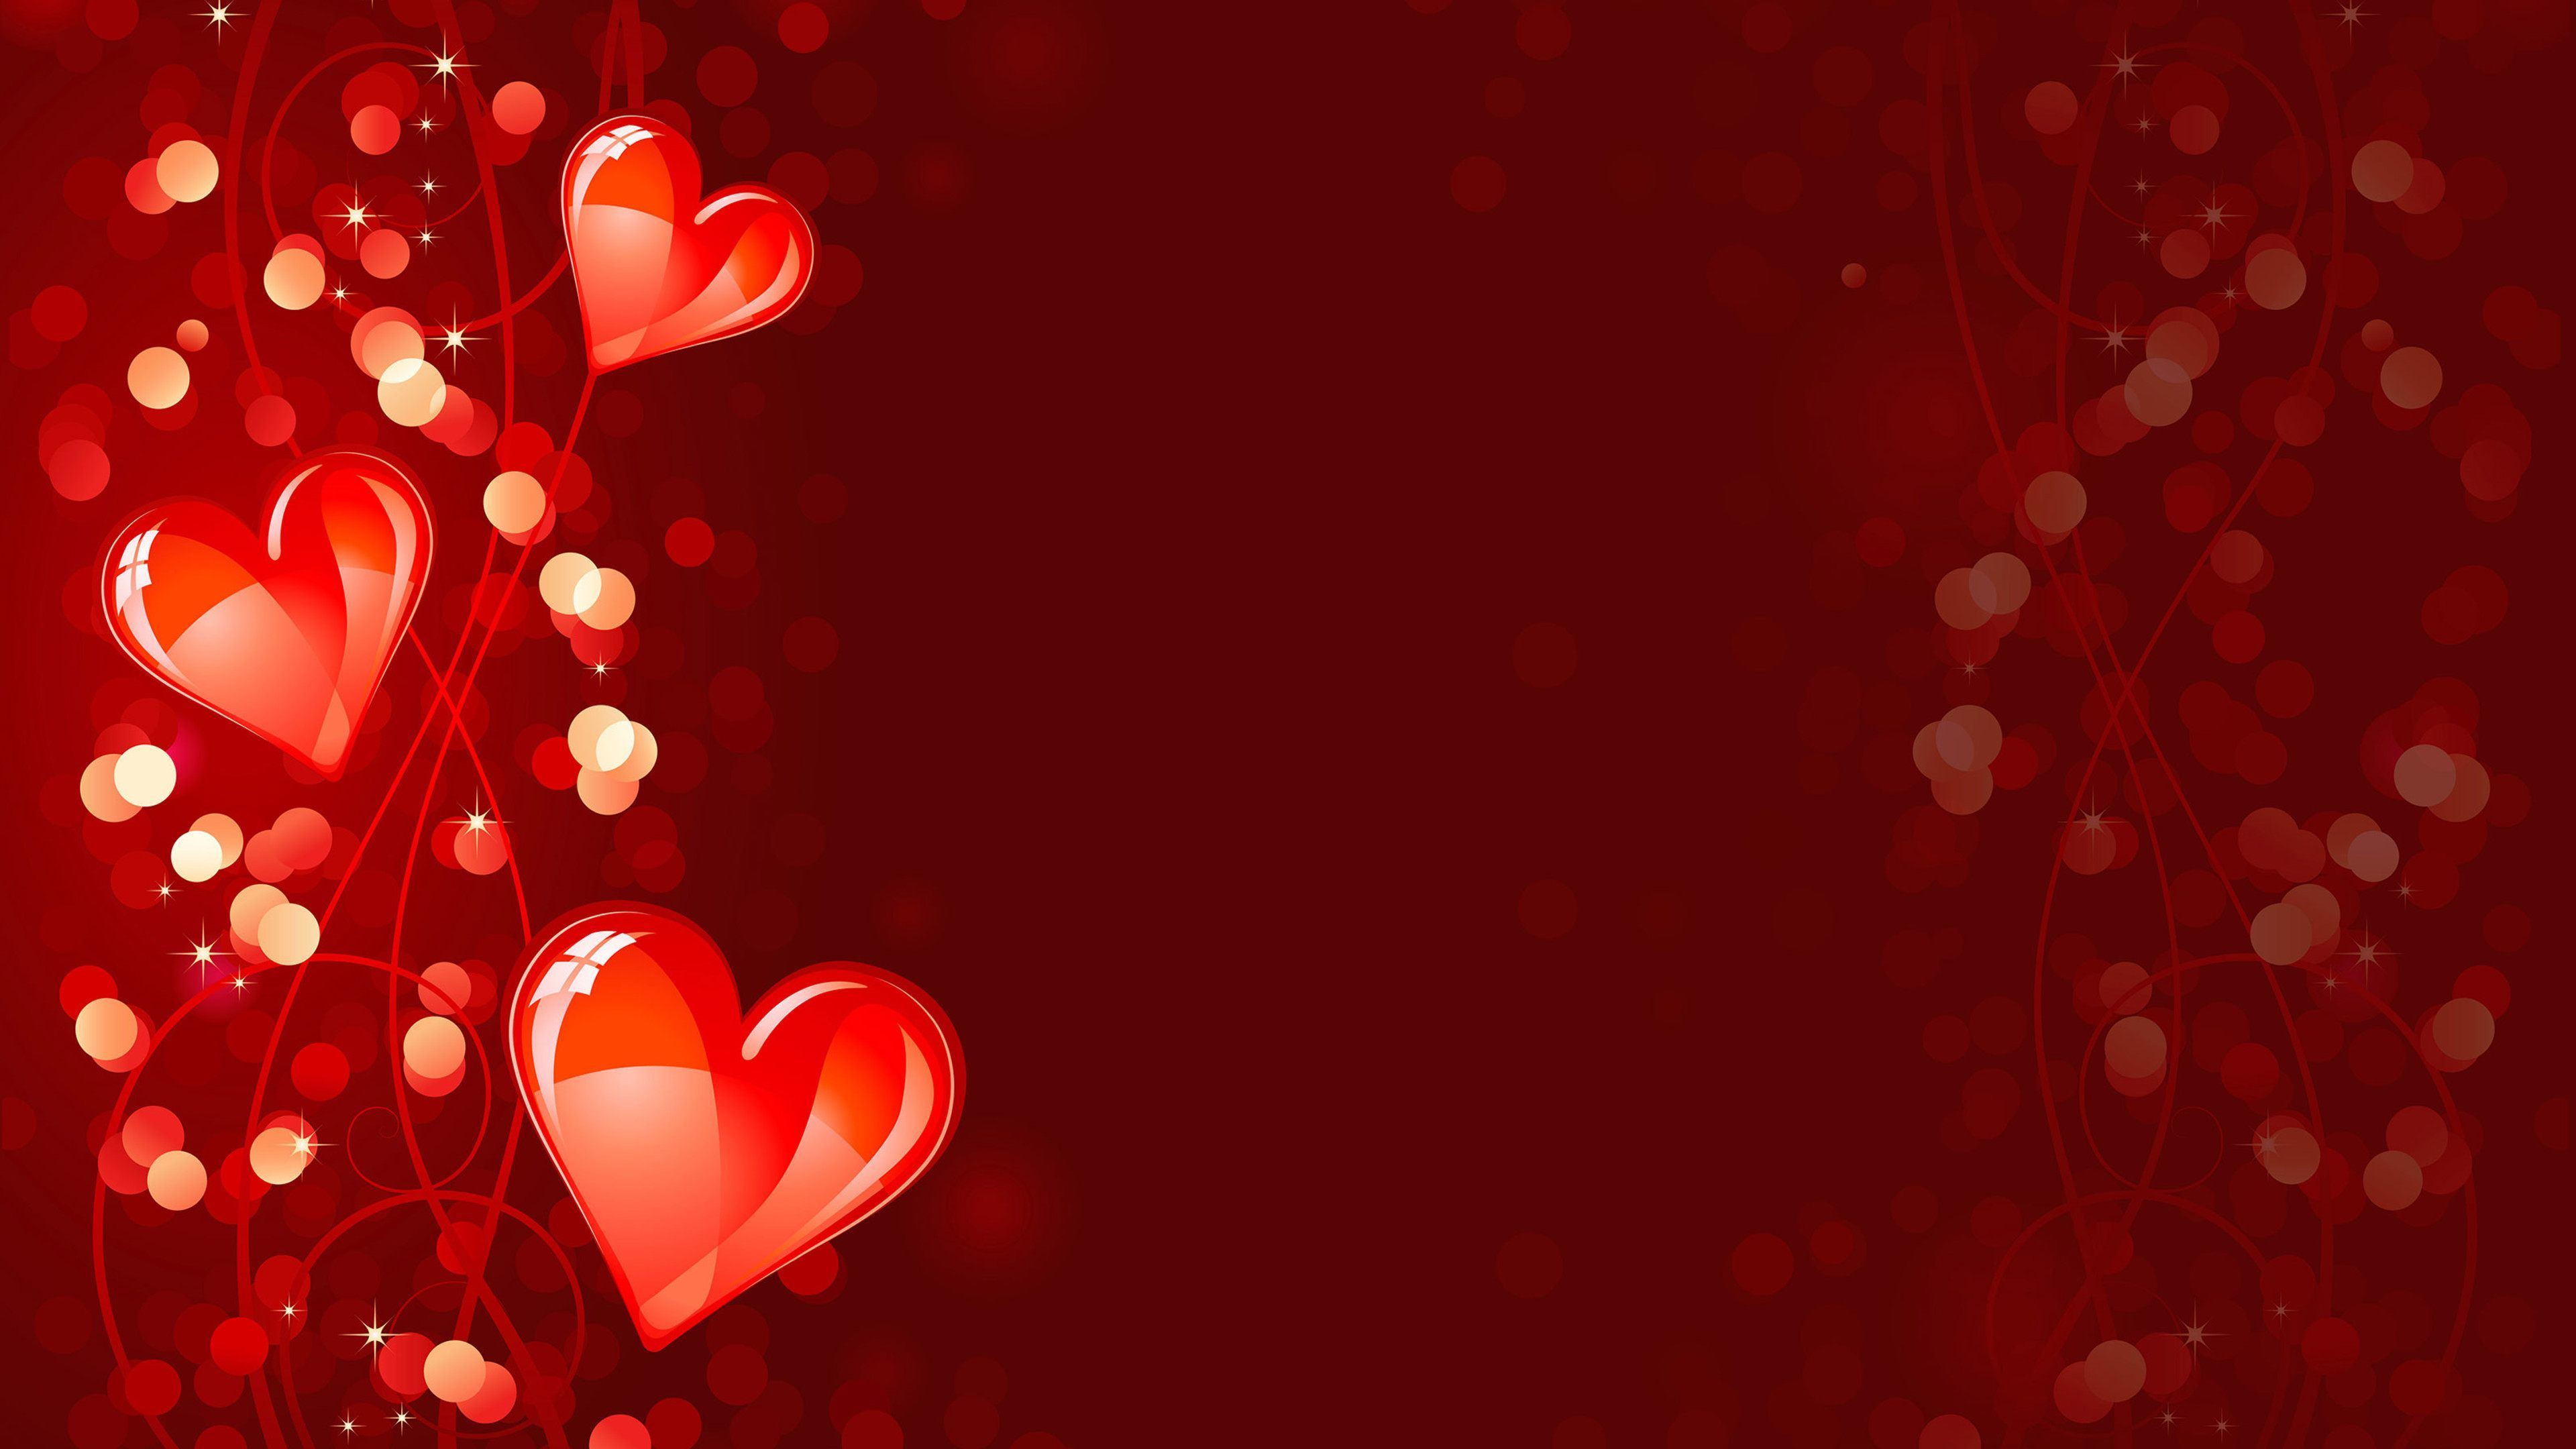 Wallpaper Love Quotes Wallpaper On Zedge Heart Wallpaper Hd Valentine Background Heart Wallpaper Full hd love background images hd 1080p